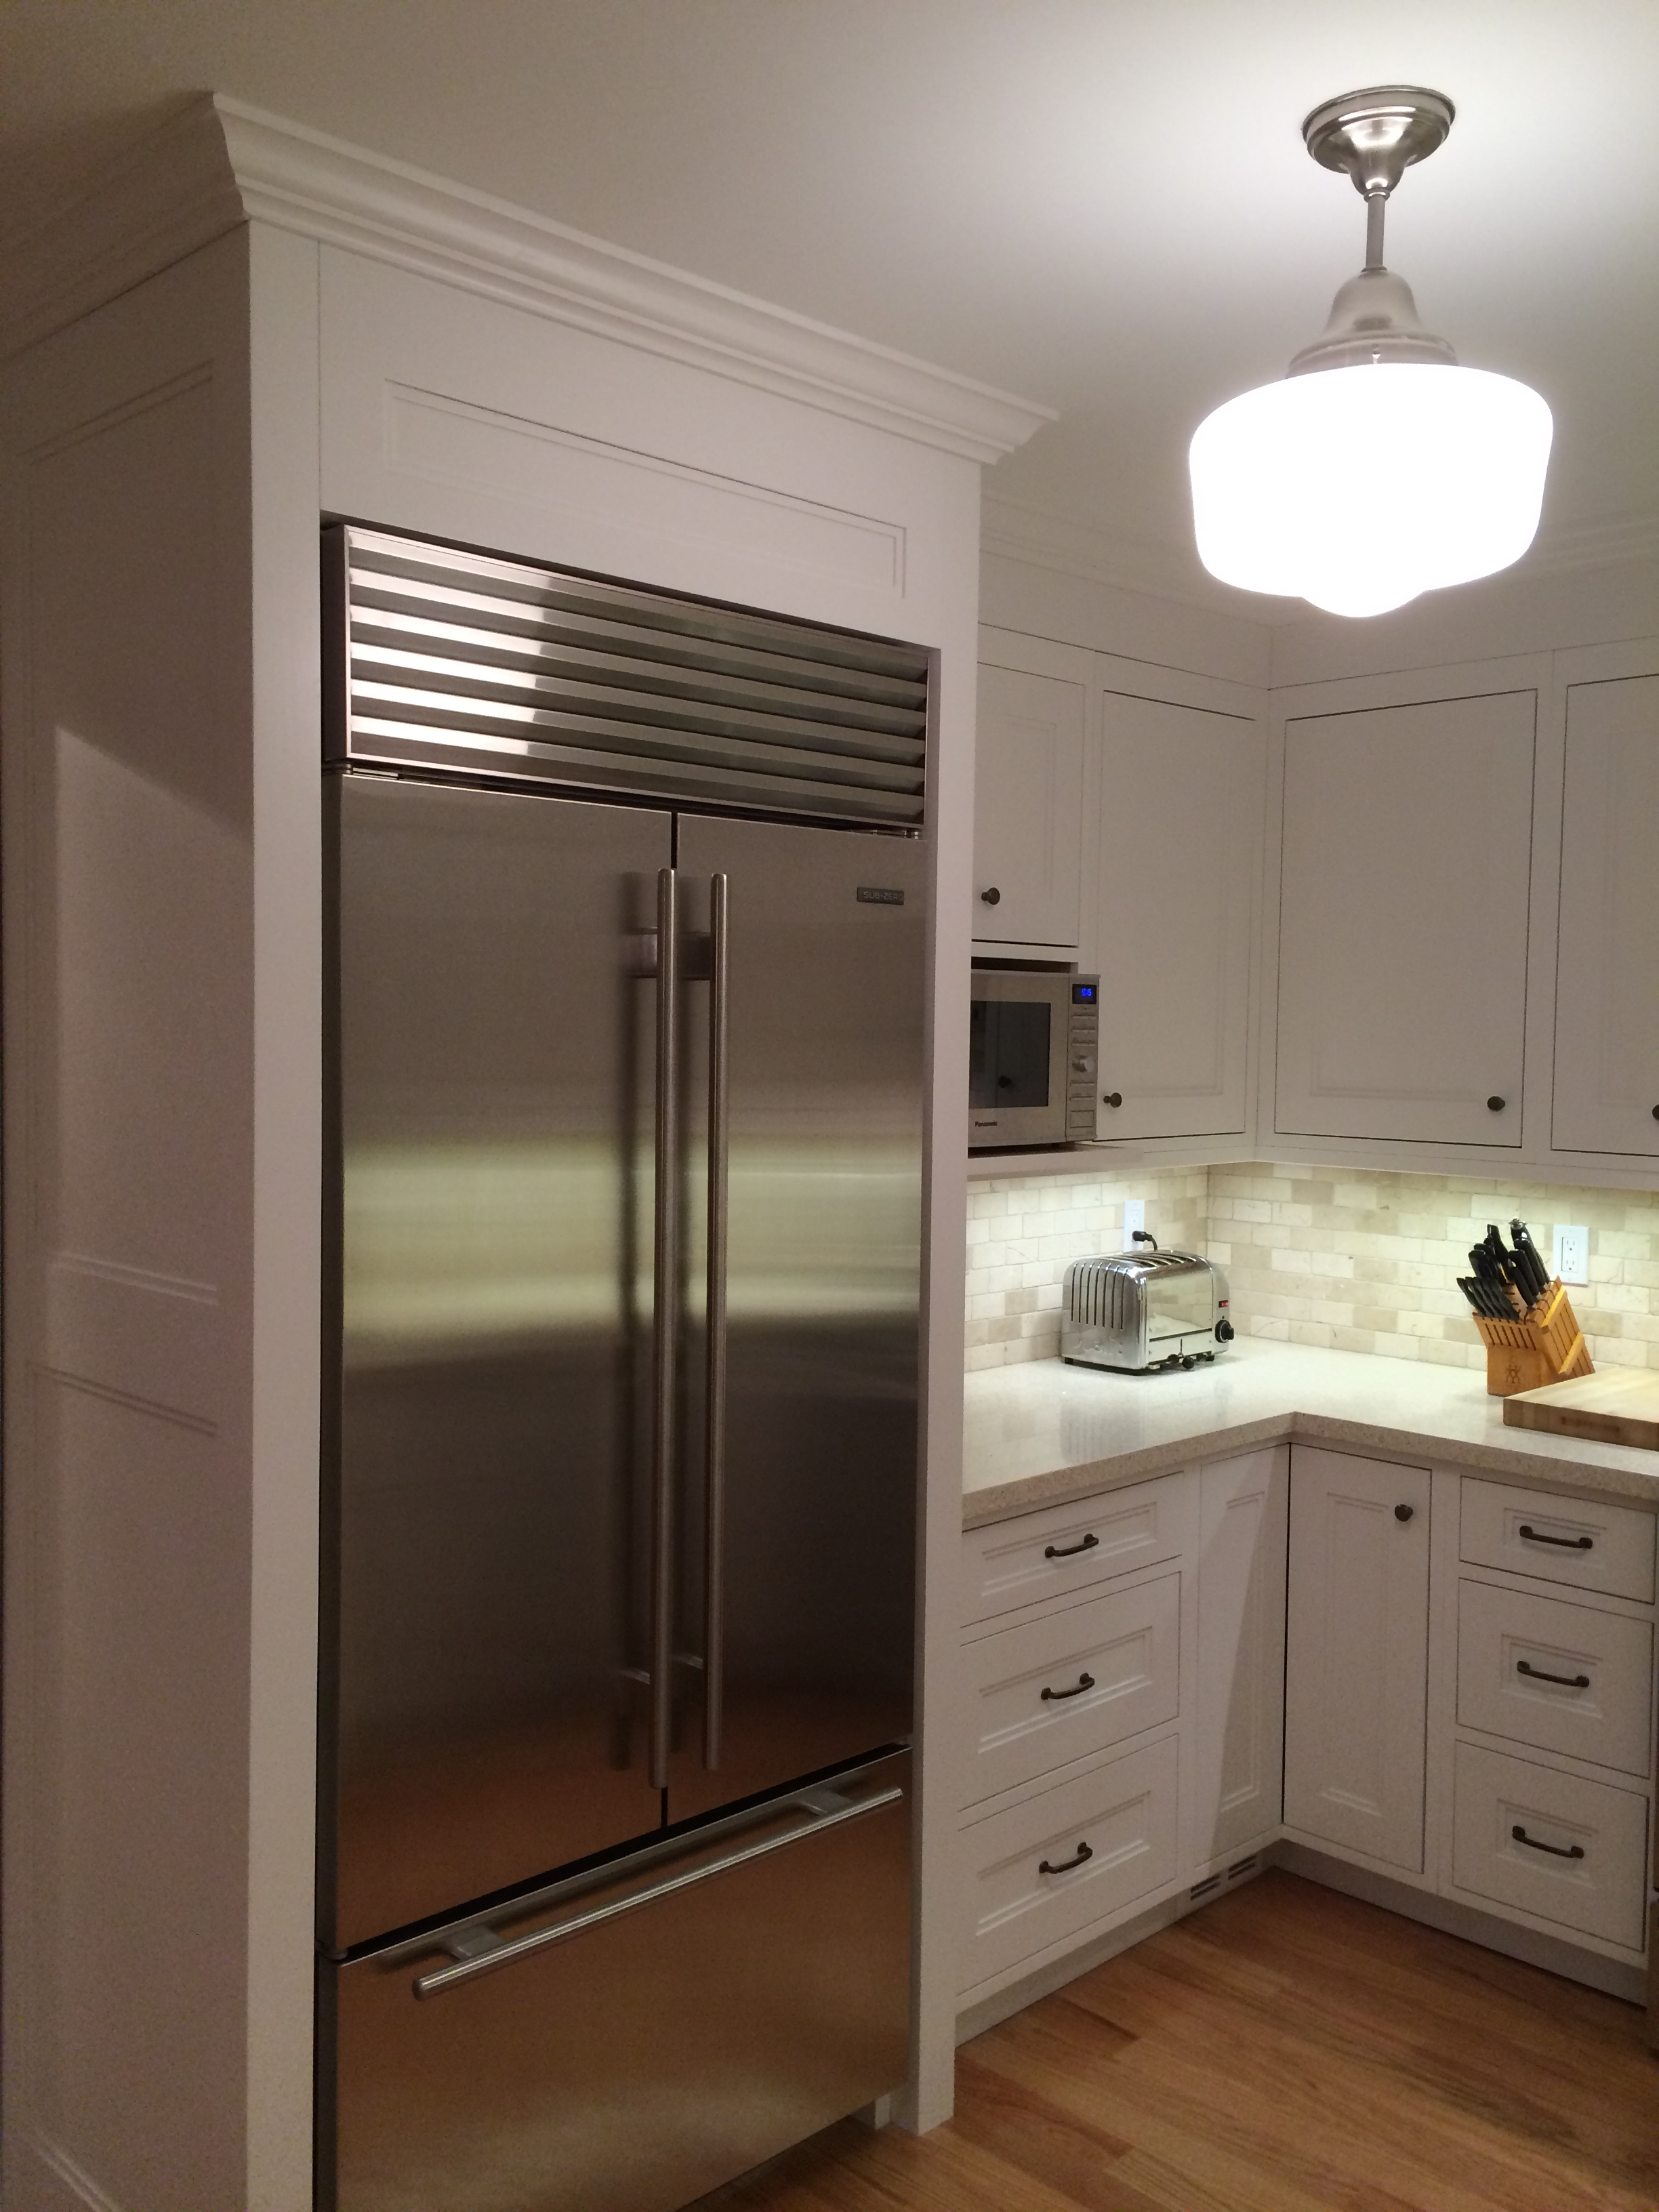 Heritage Carpentry Company » Built-in fridge surround